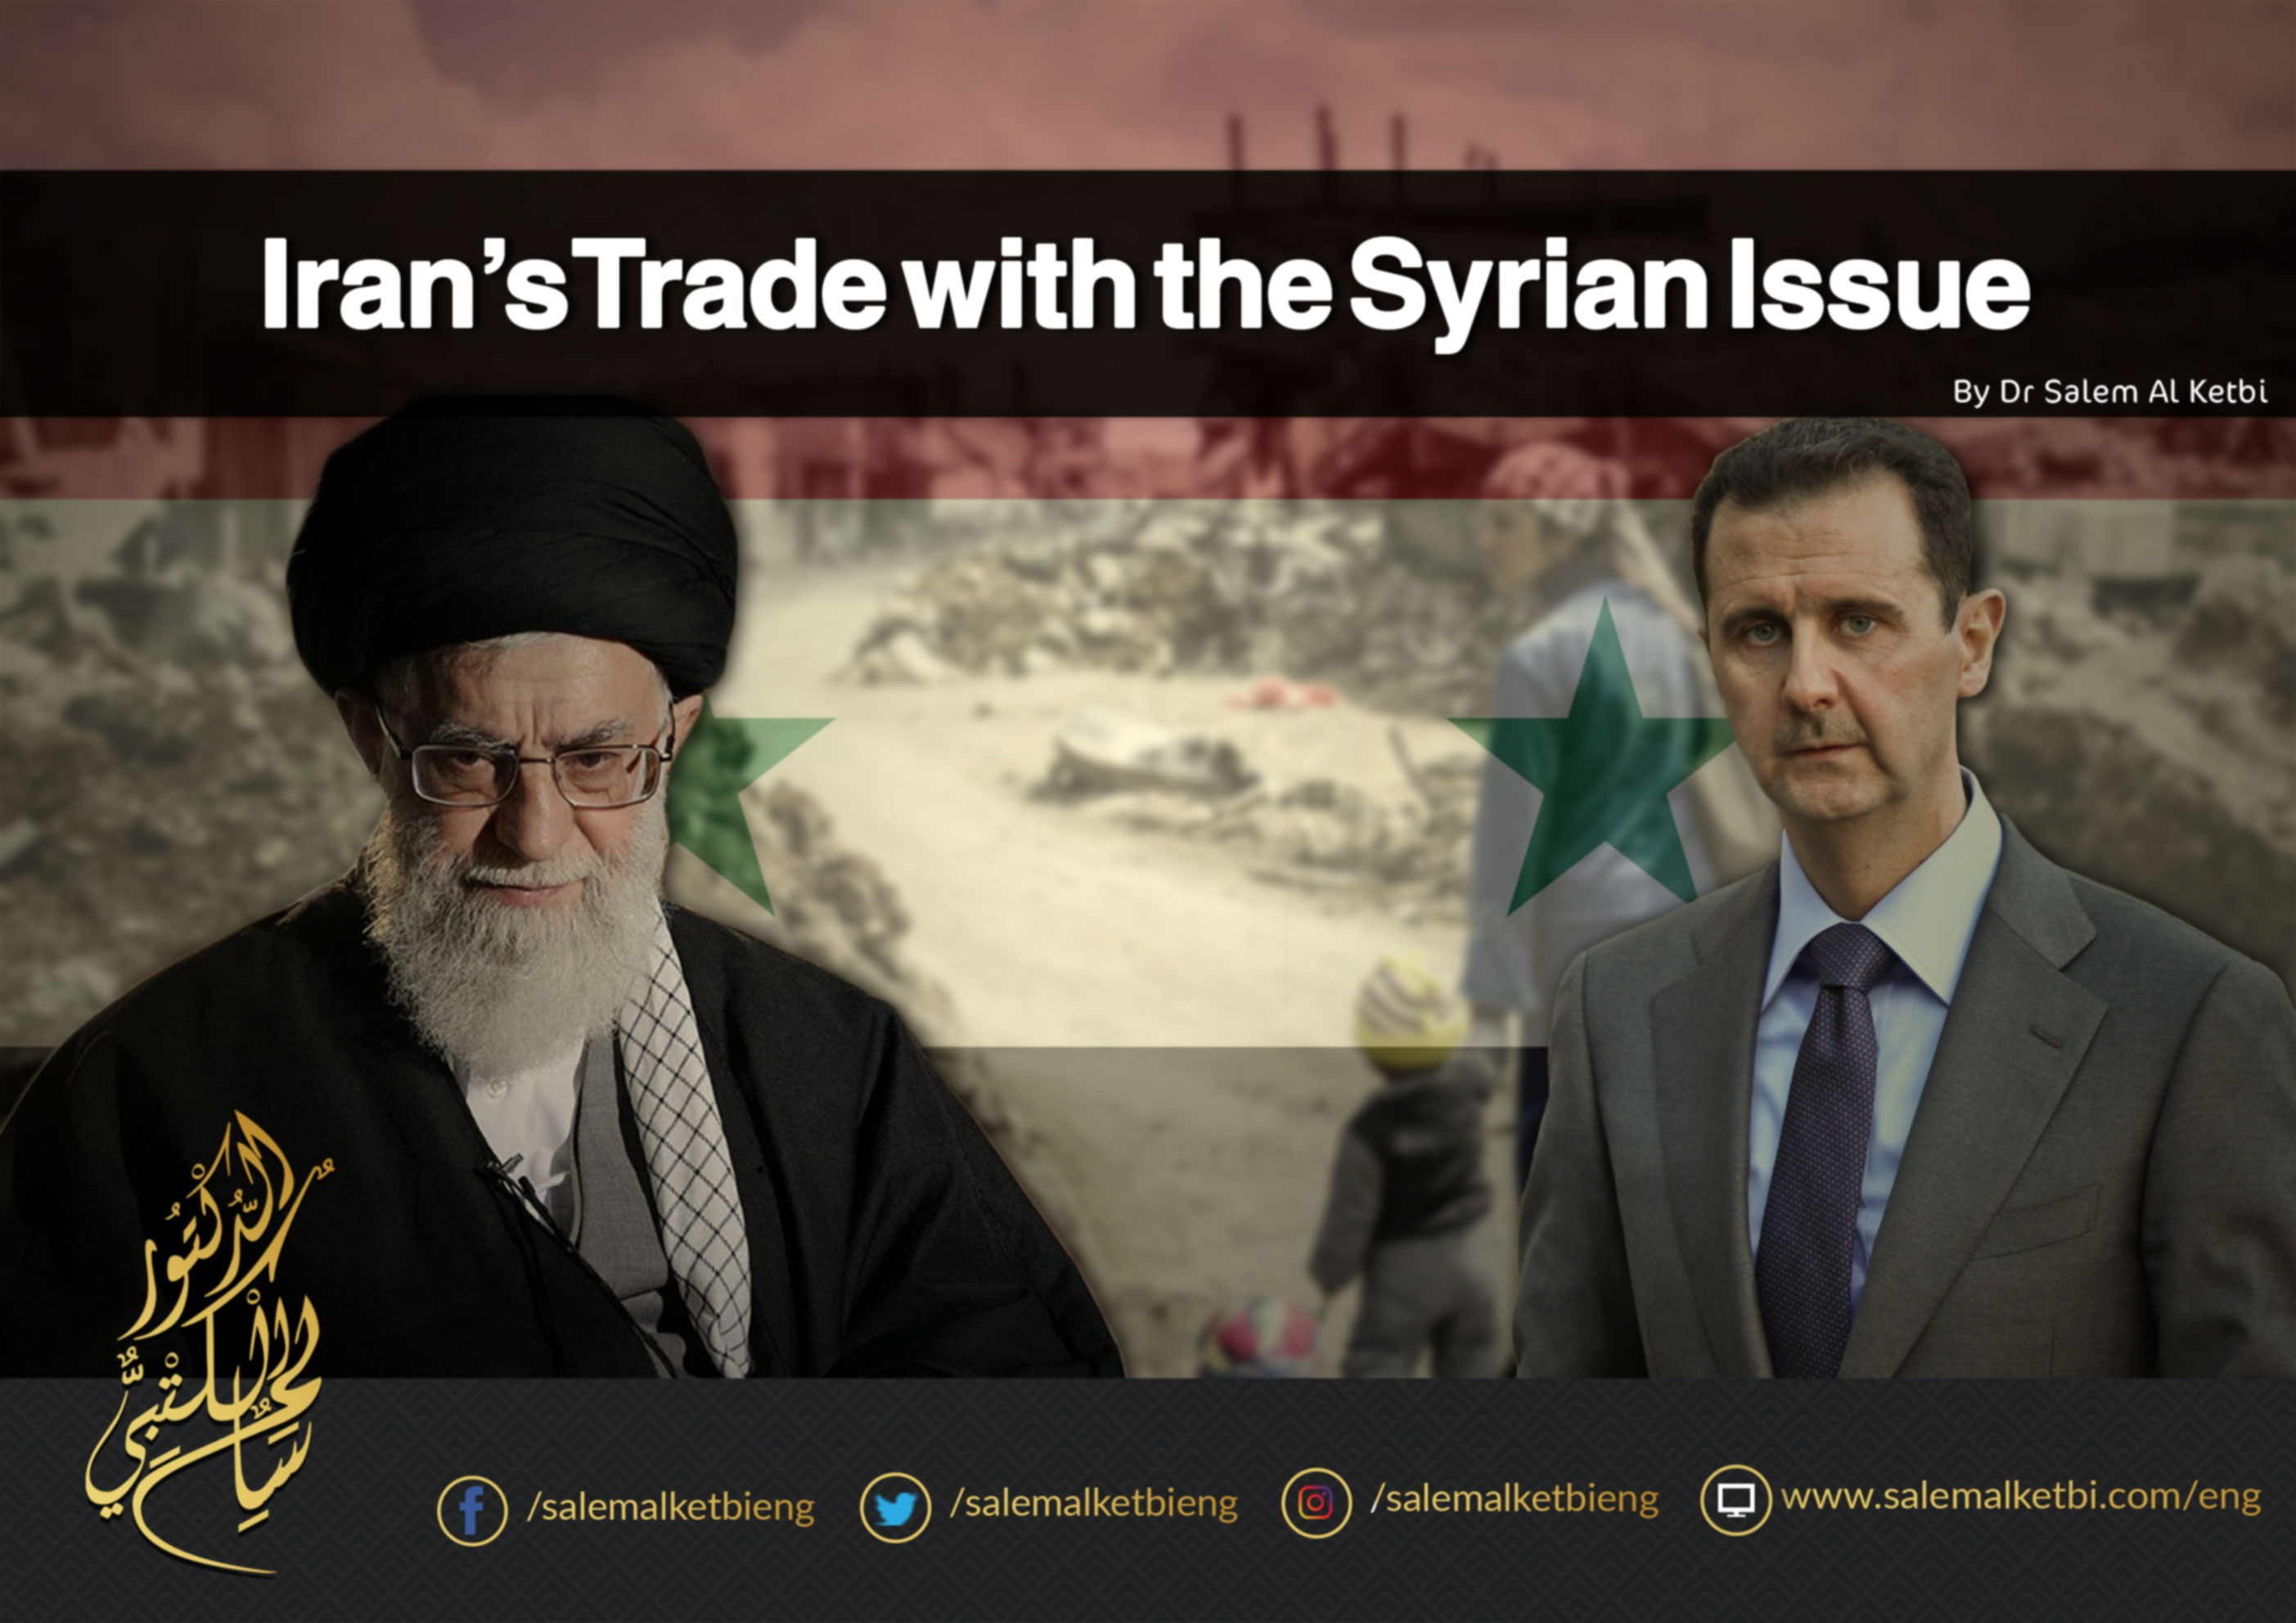 Iran's Trade with the Syrian Issue